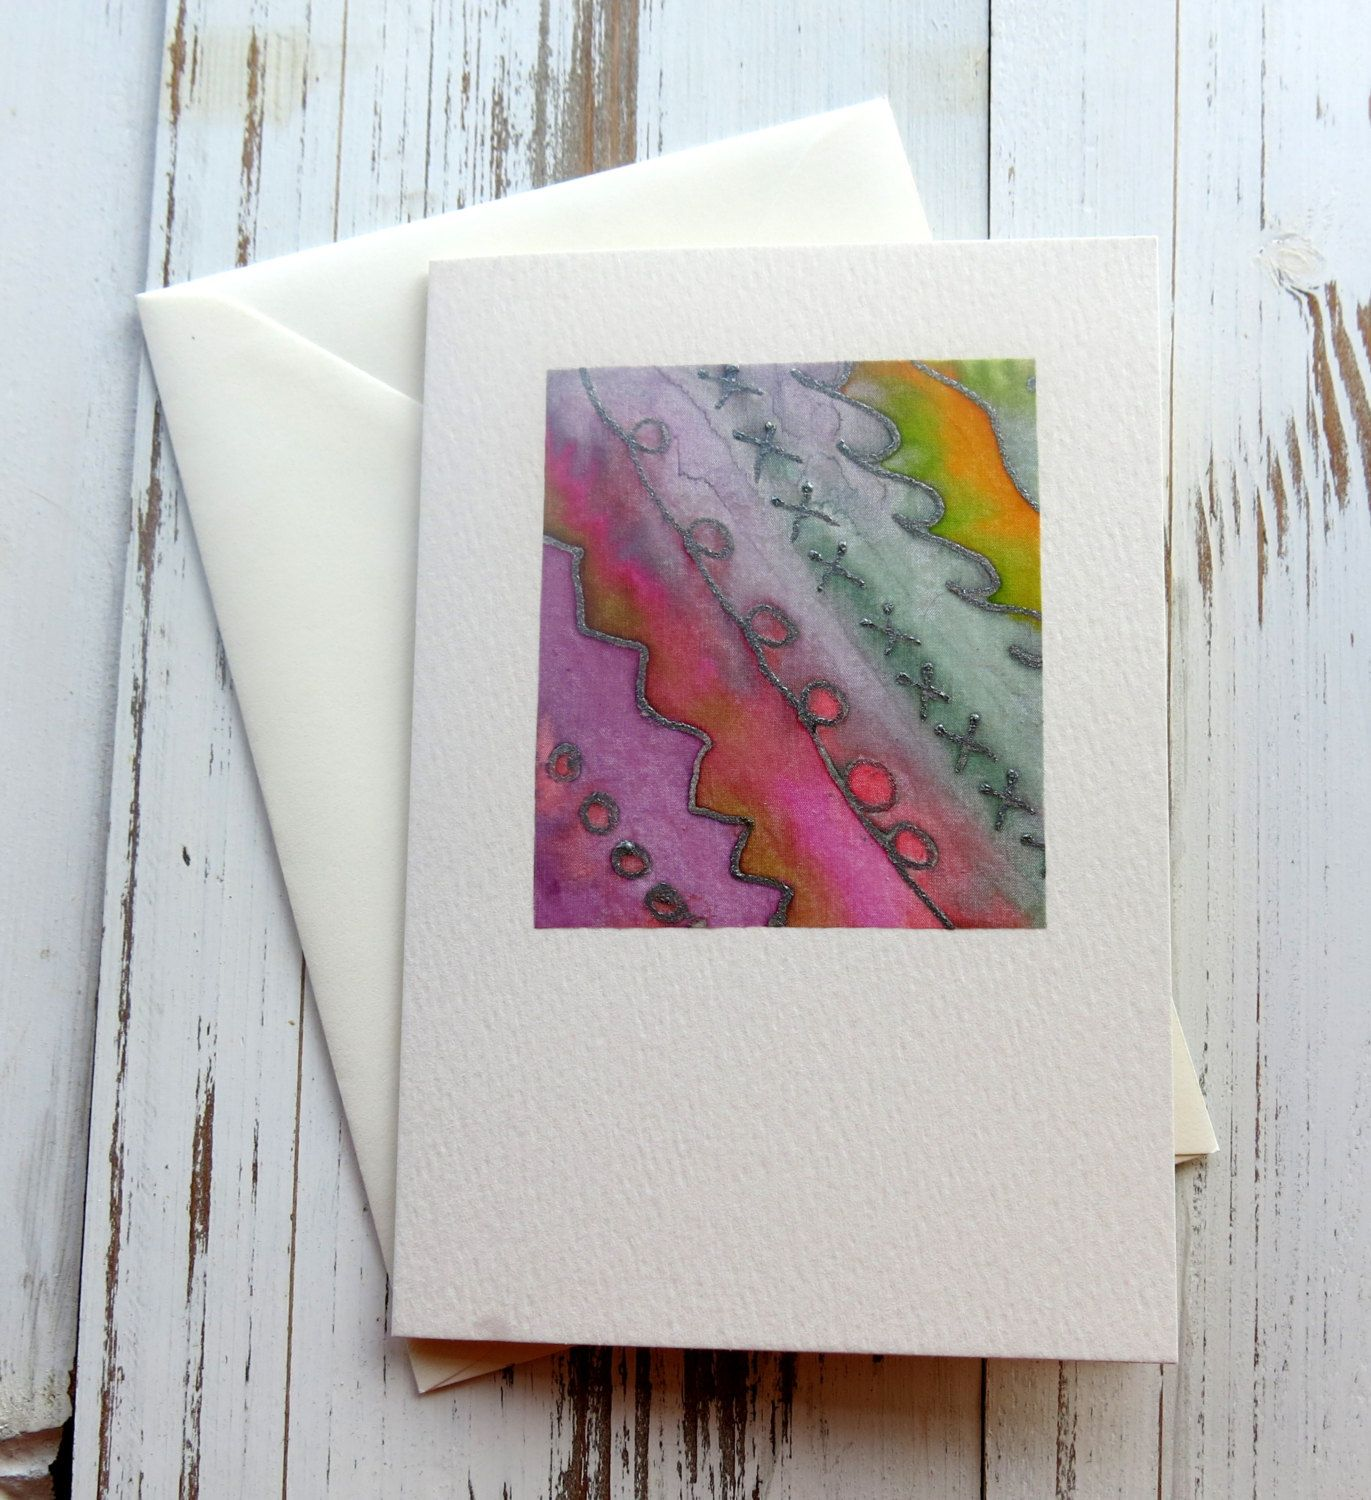 Blank card birthday card silk painted card abstract design blank card birthday card silk painted card abstract design hand painted greeting cards ukpaint kristyandbryce Images